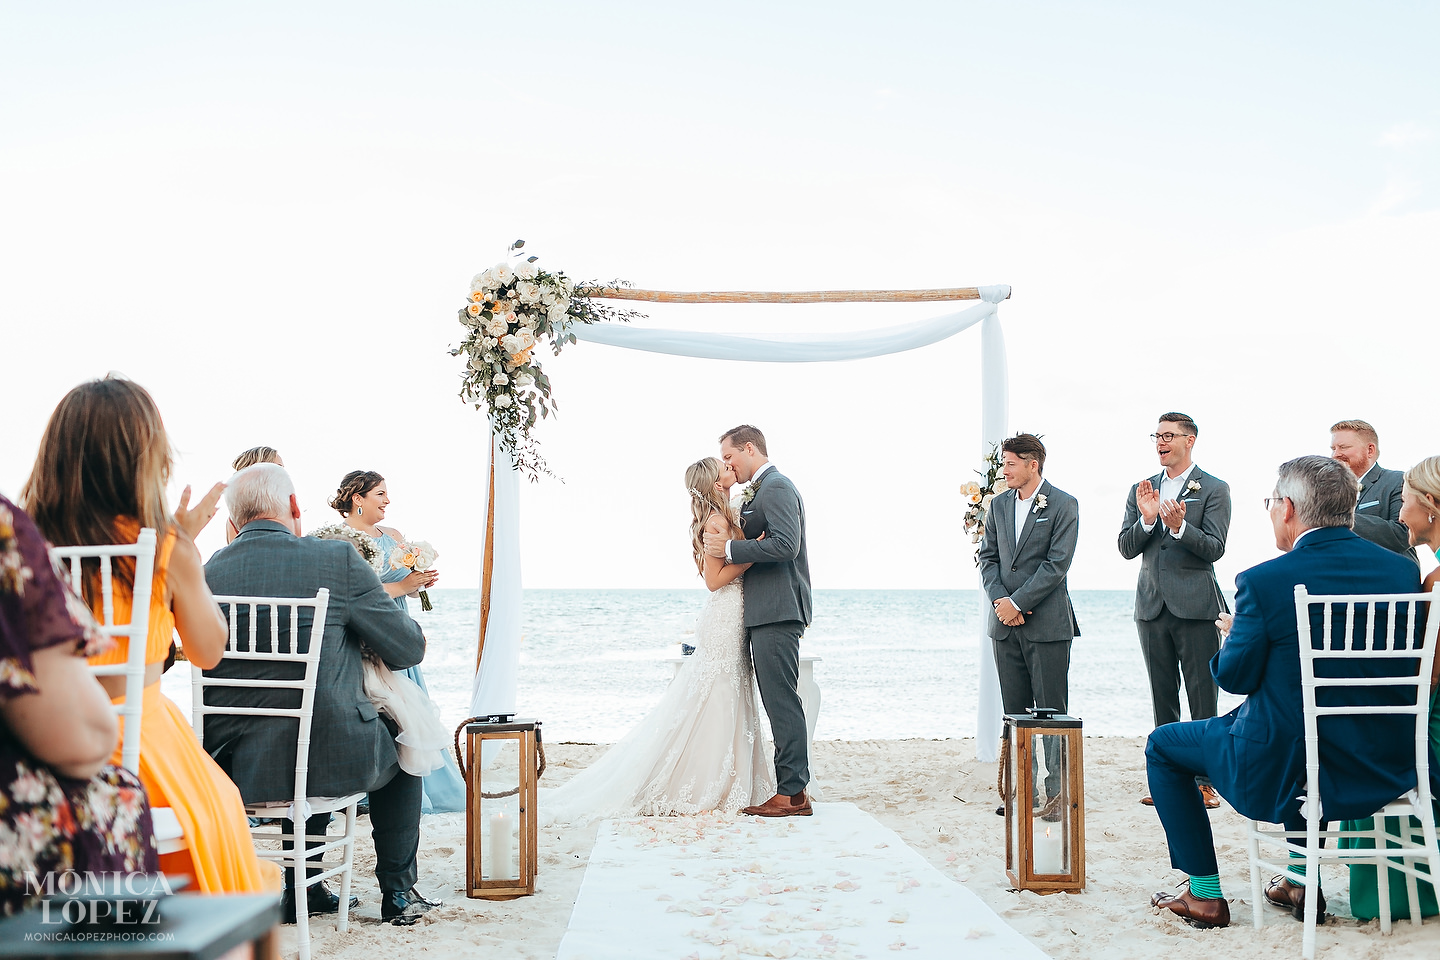 Dreams Riviera Cancun Beach Wedding by Monica Lopez Photography